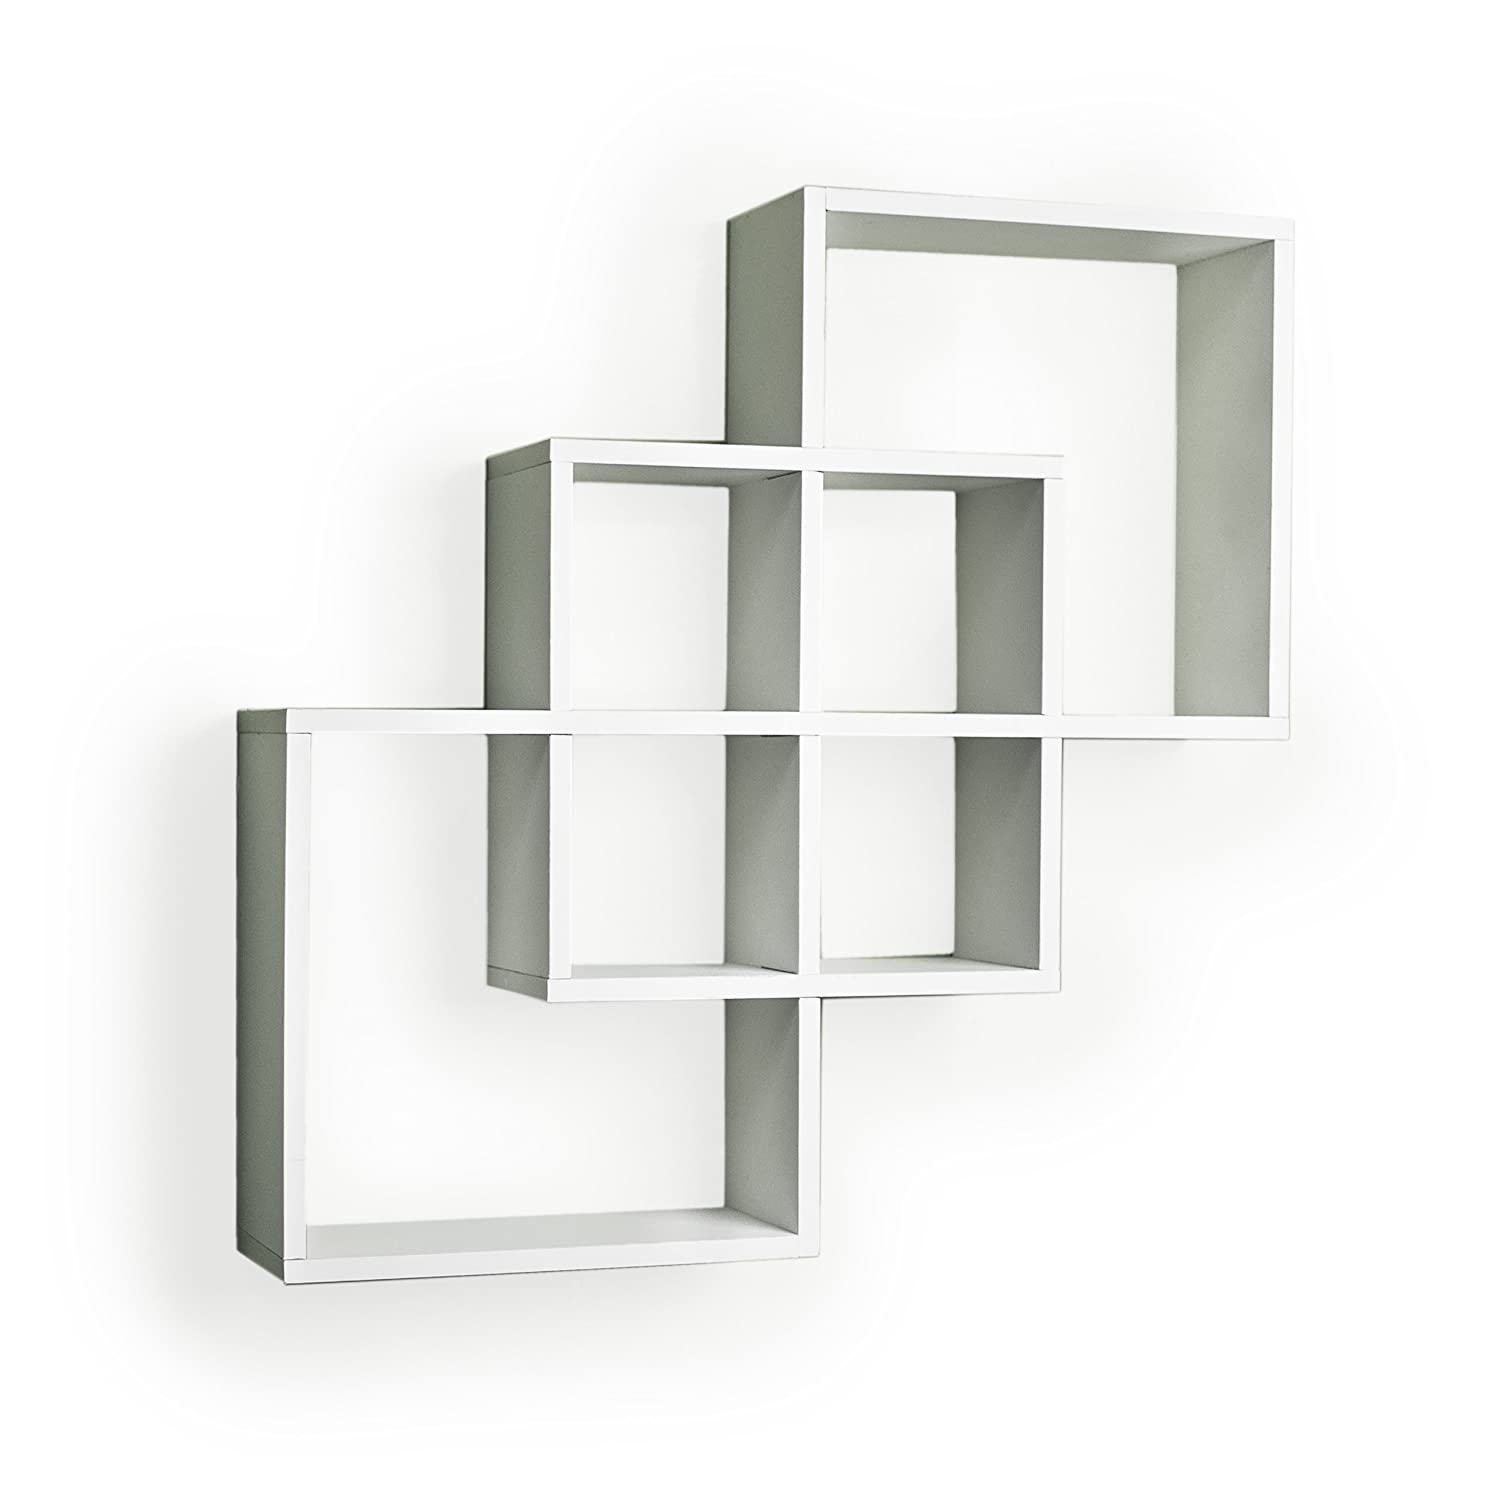 Danya B Ff6013w Decorative Contemporary Floating Intersecting Square Cube  Wall Shelves- White